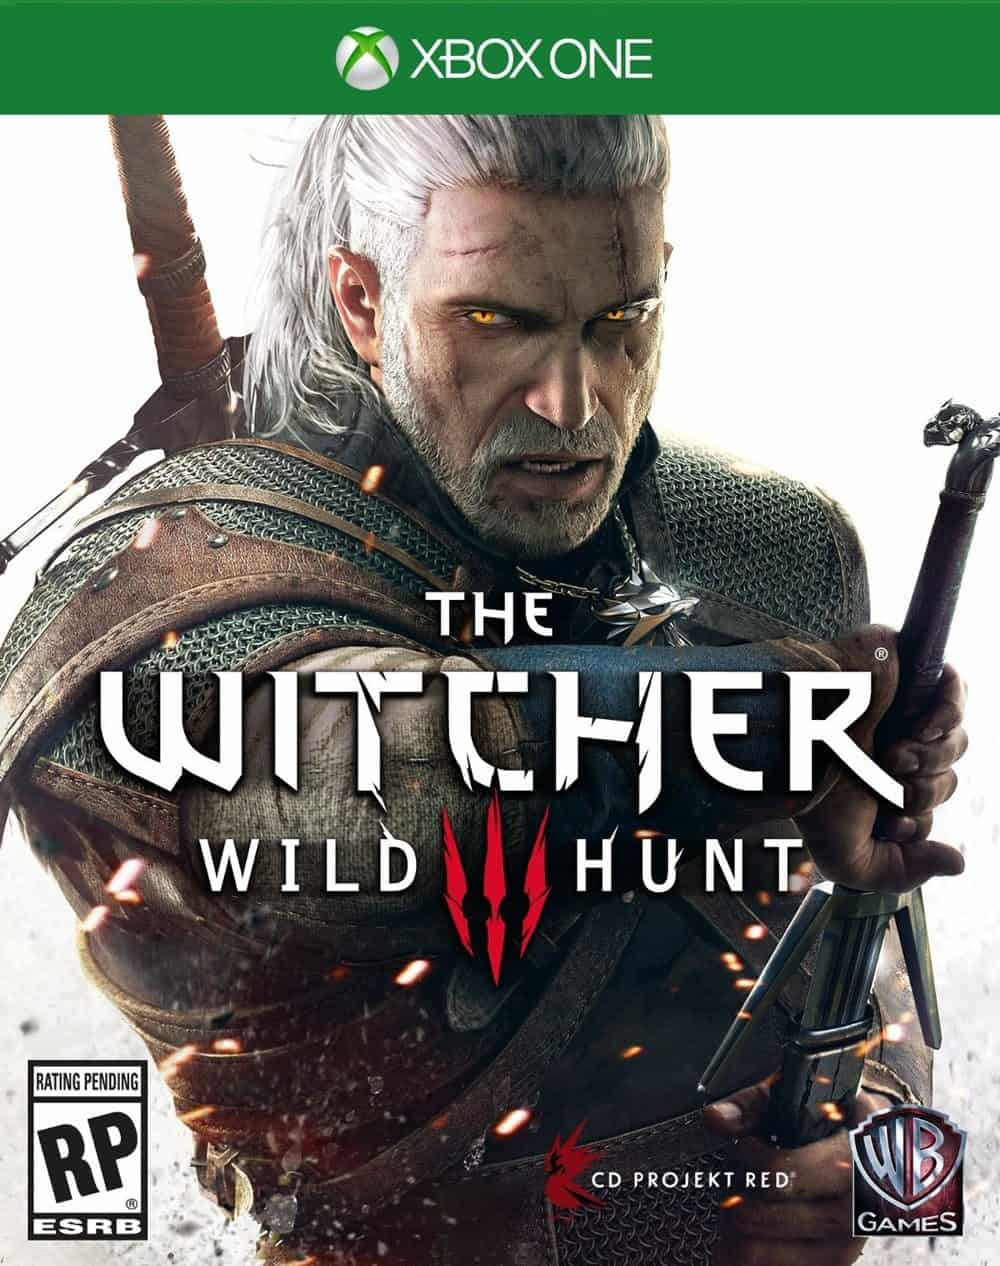 Game Review: The Witcher 3: Wild Hunt (Xbox One)